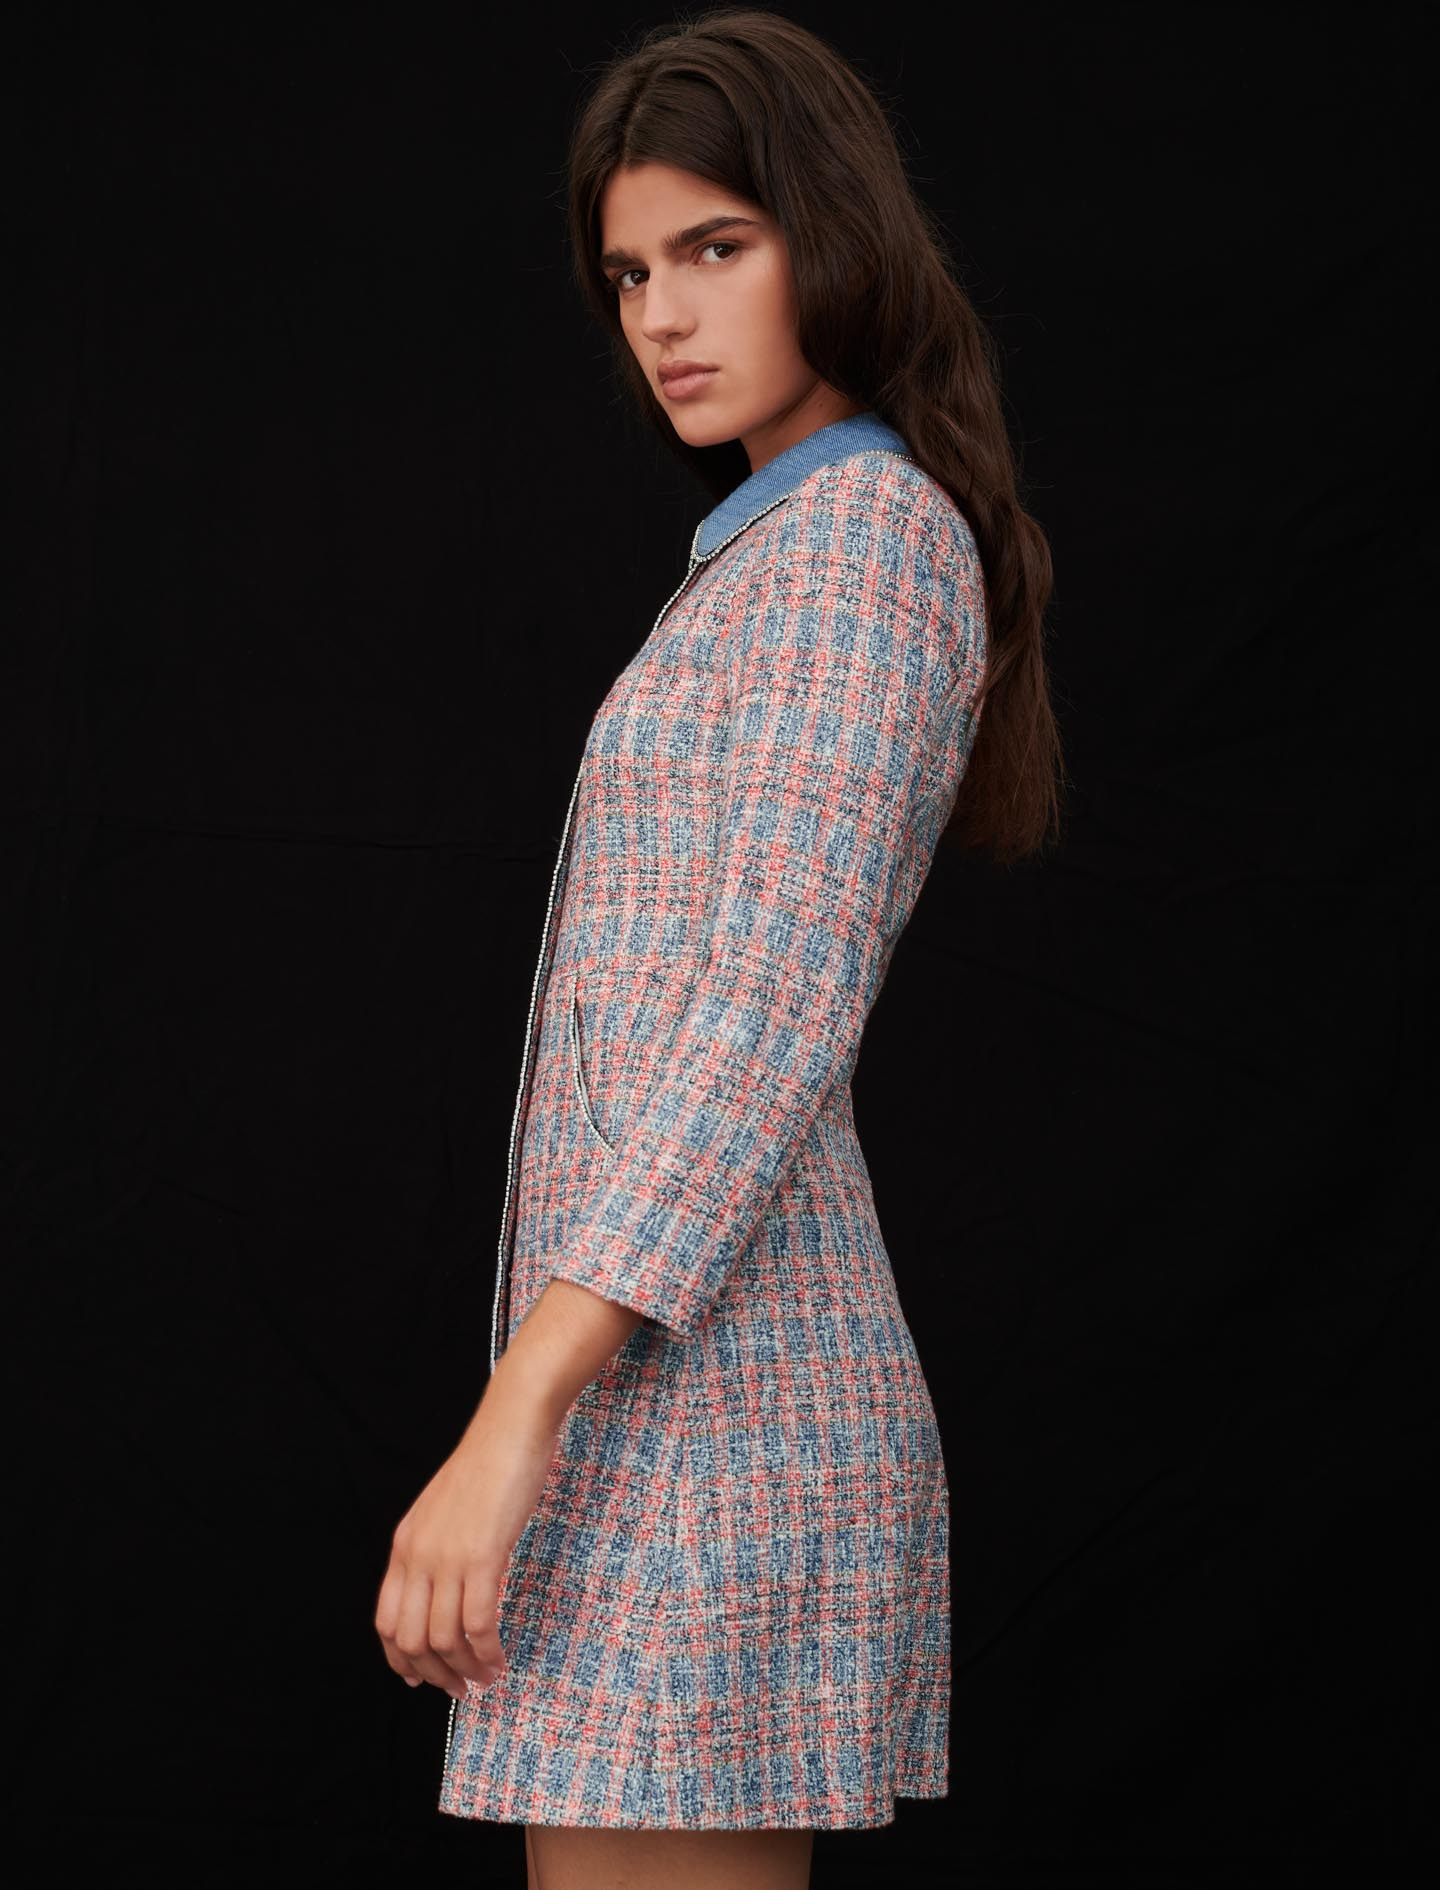 Maje weed dress with denim contrasts